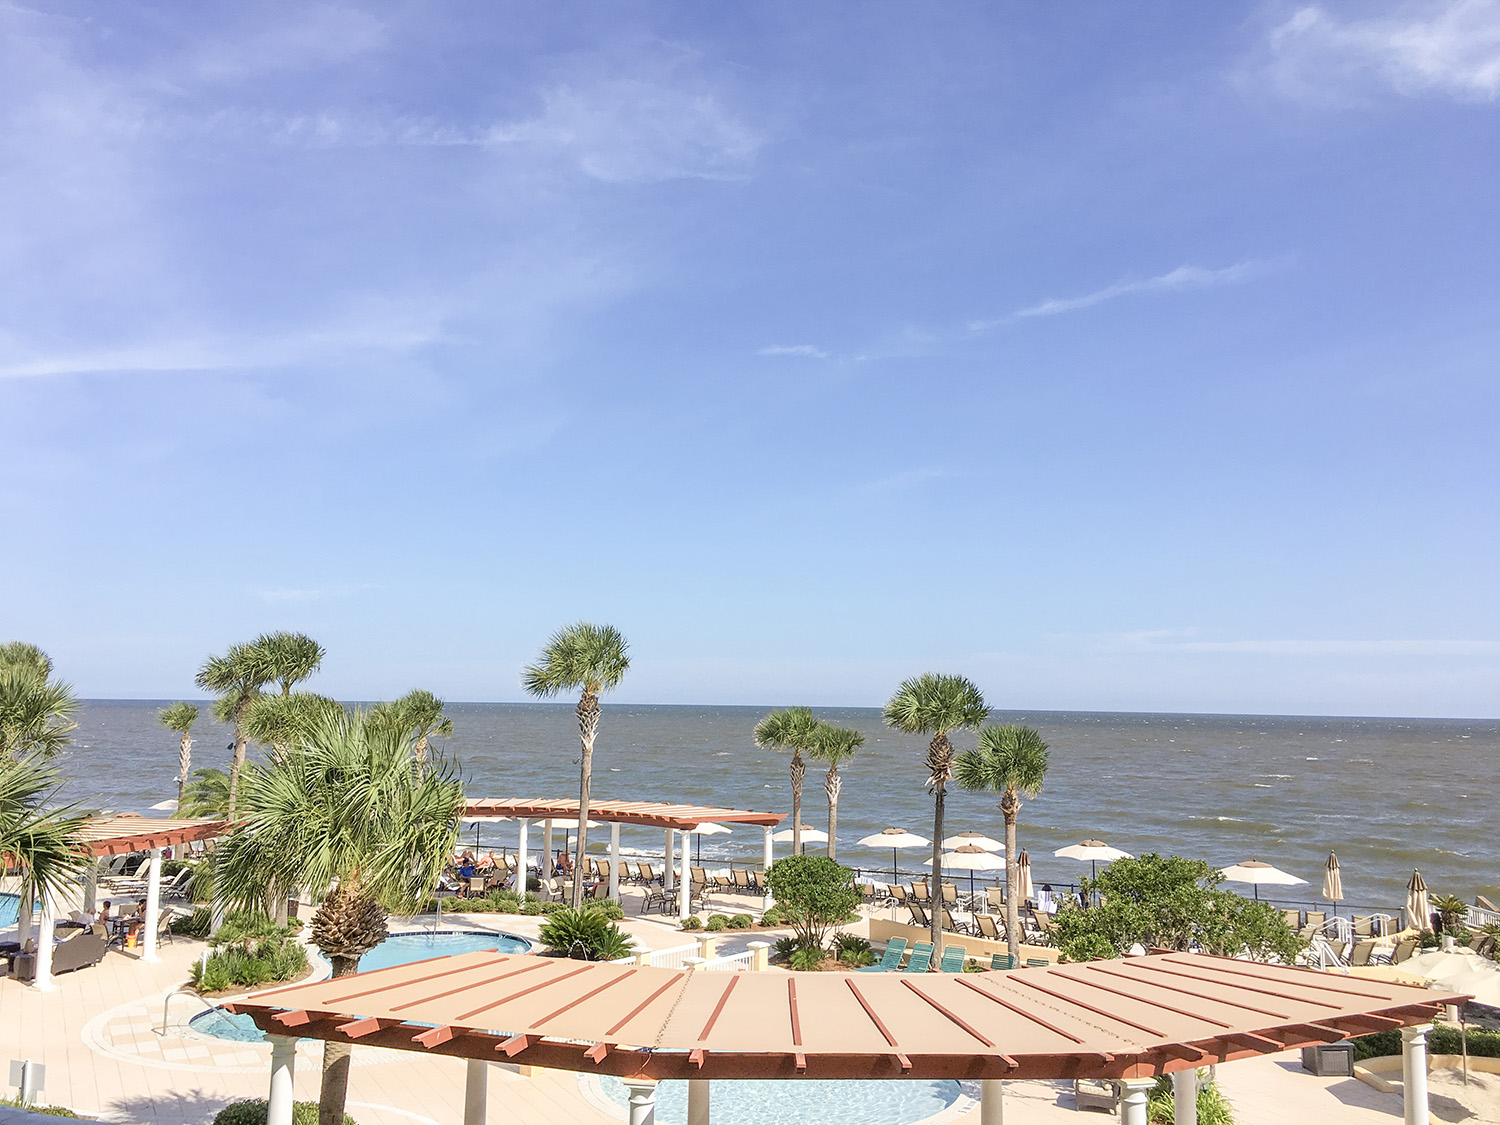 King and Prince Resort - St Simons Island Resort